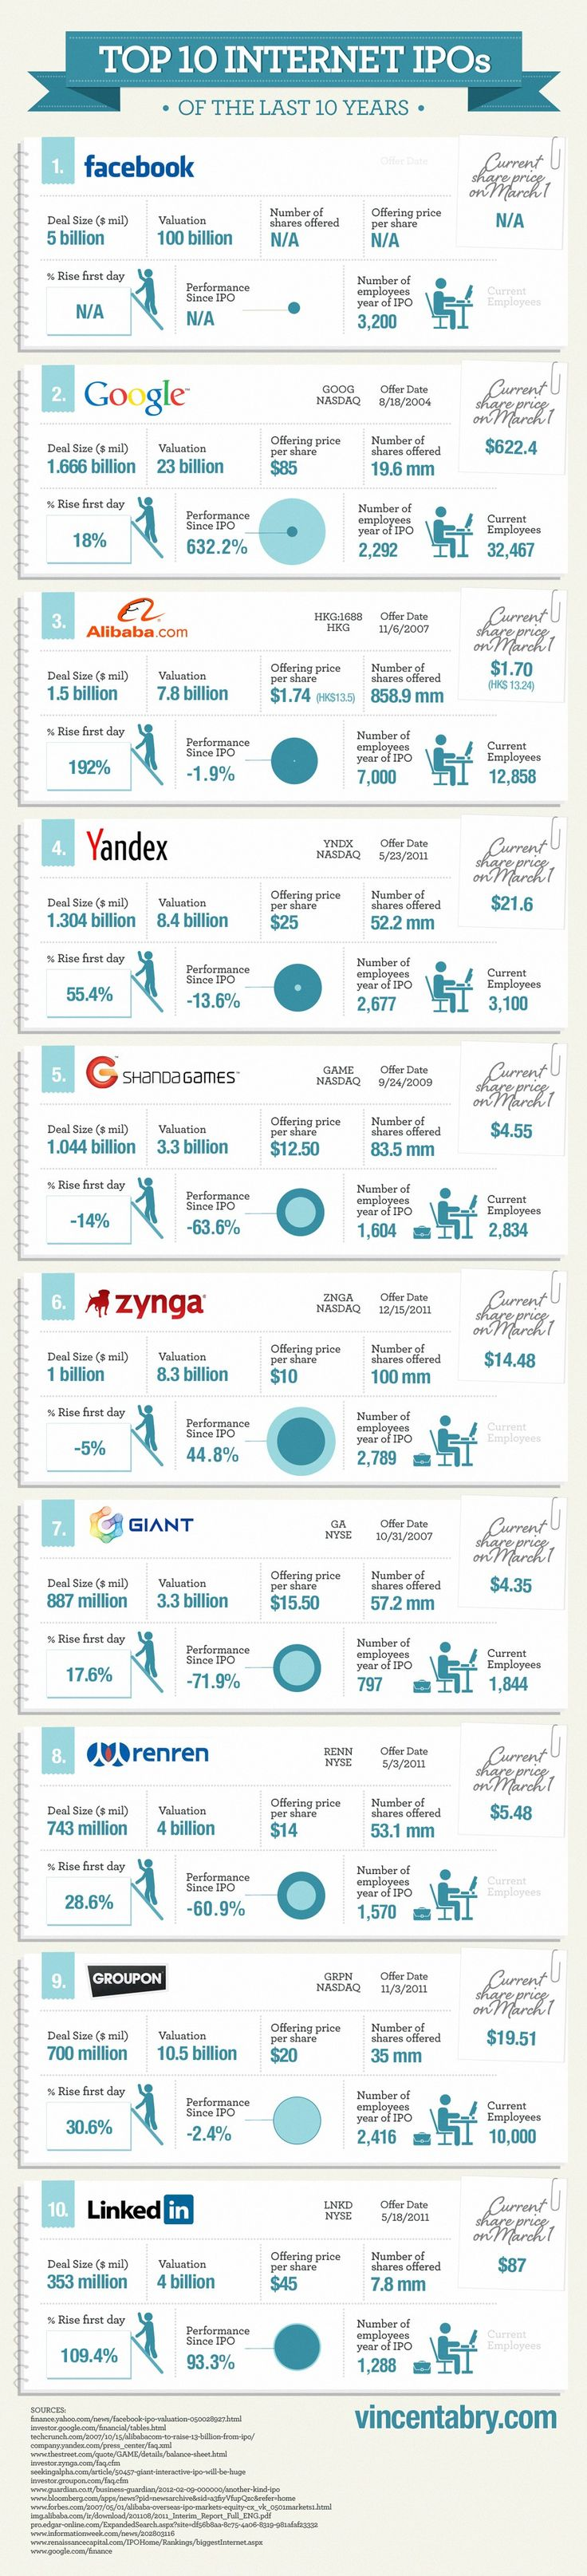 Top 10 Internet IPO in the last 10 years